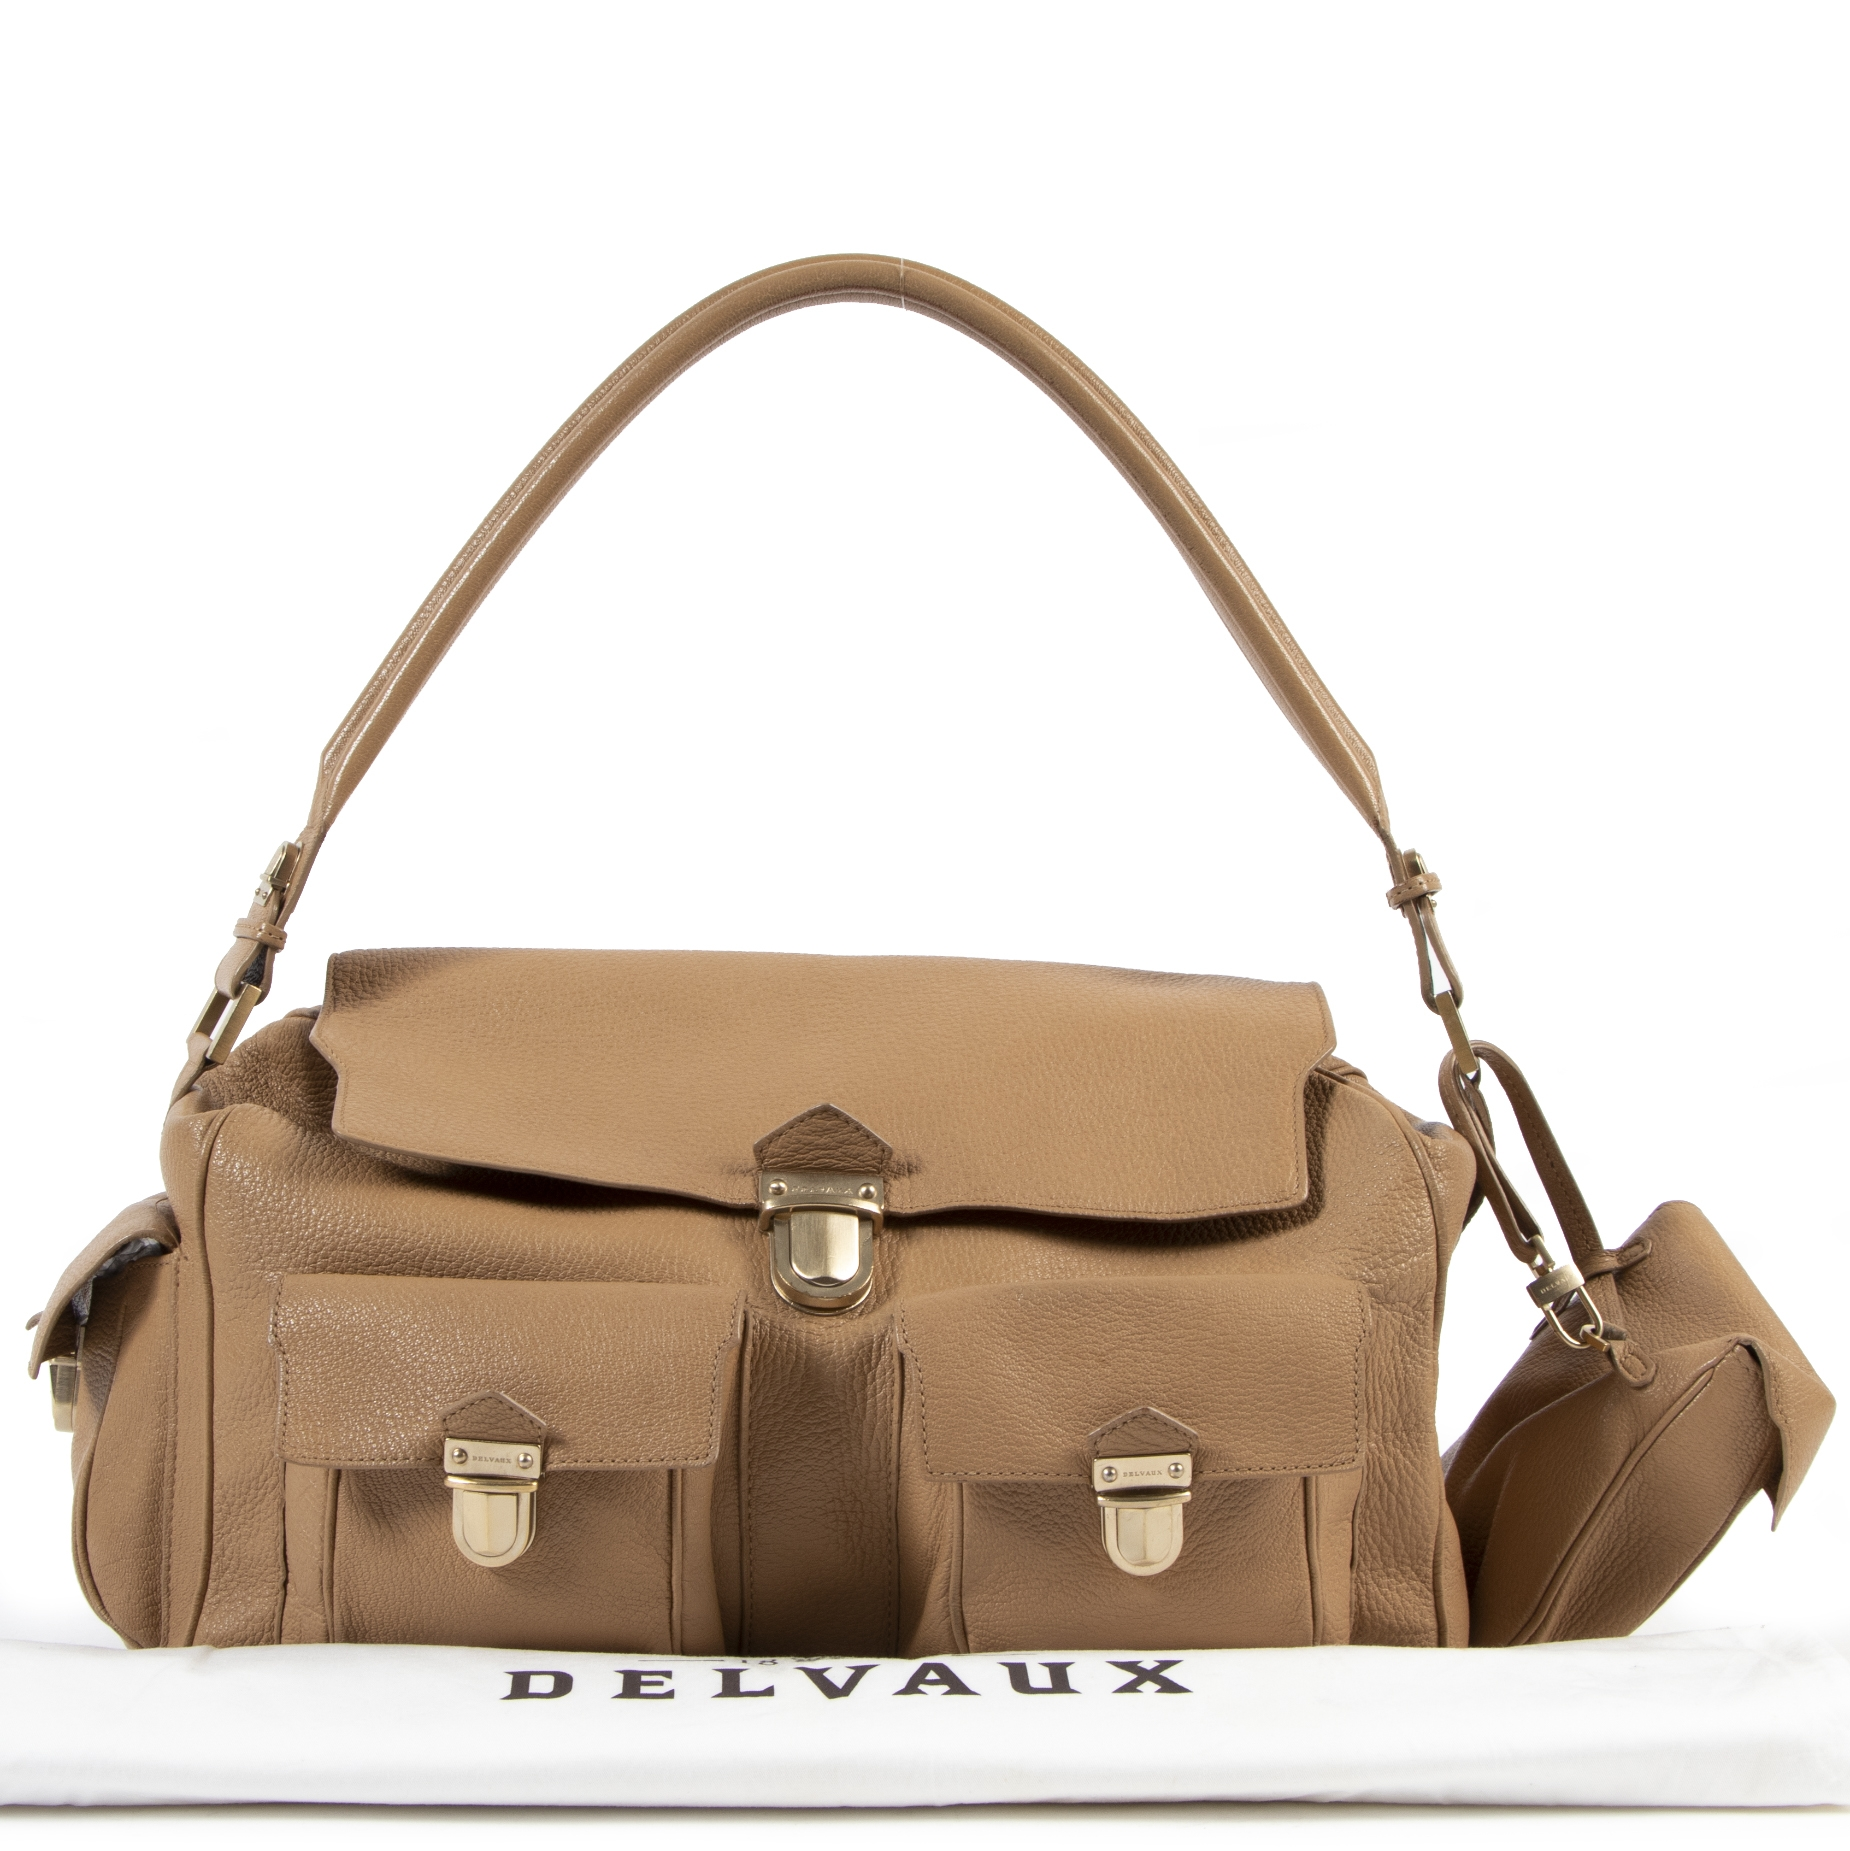 Are you looking for a Delvaux Coquin Poches Blush Shoulder Bag